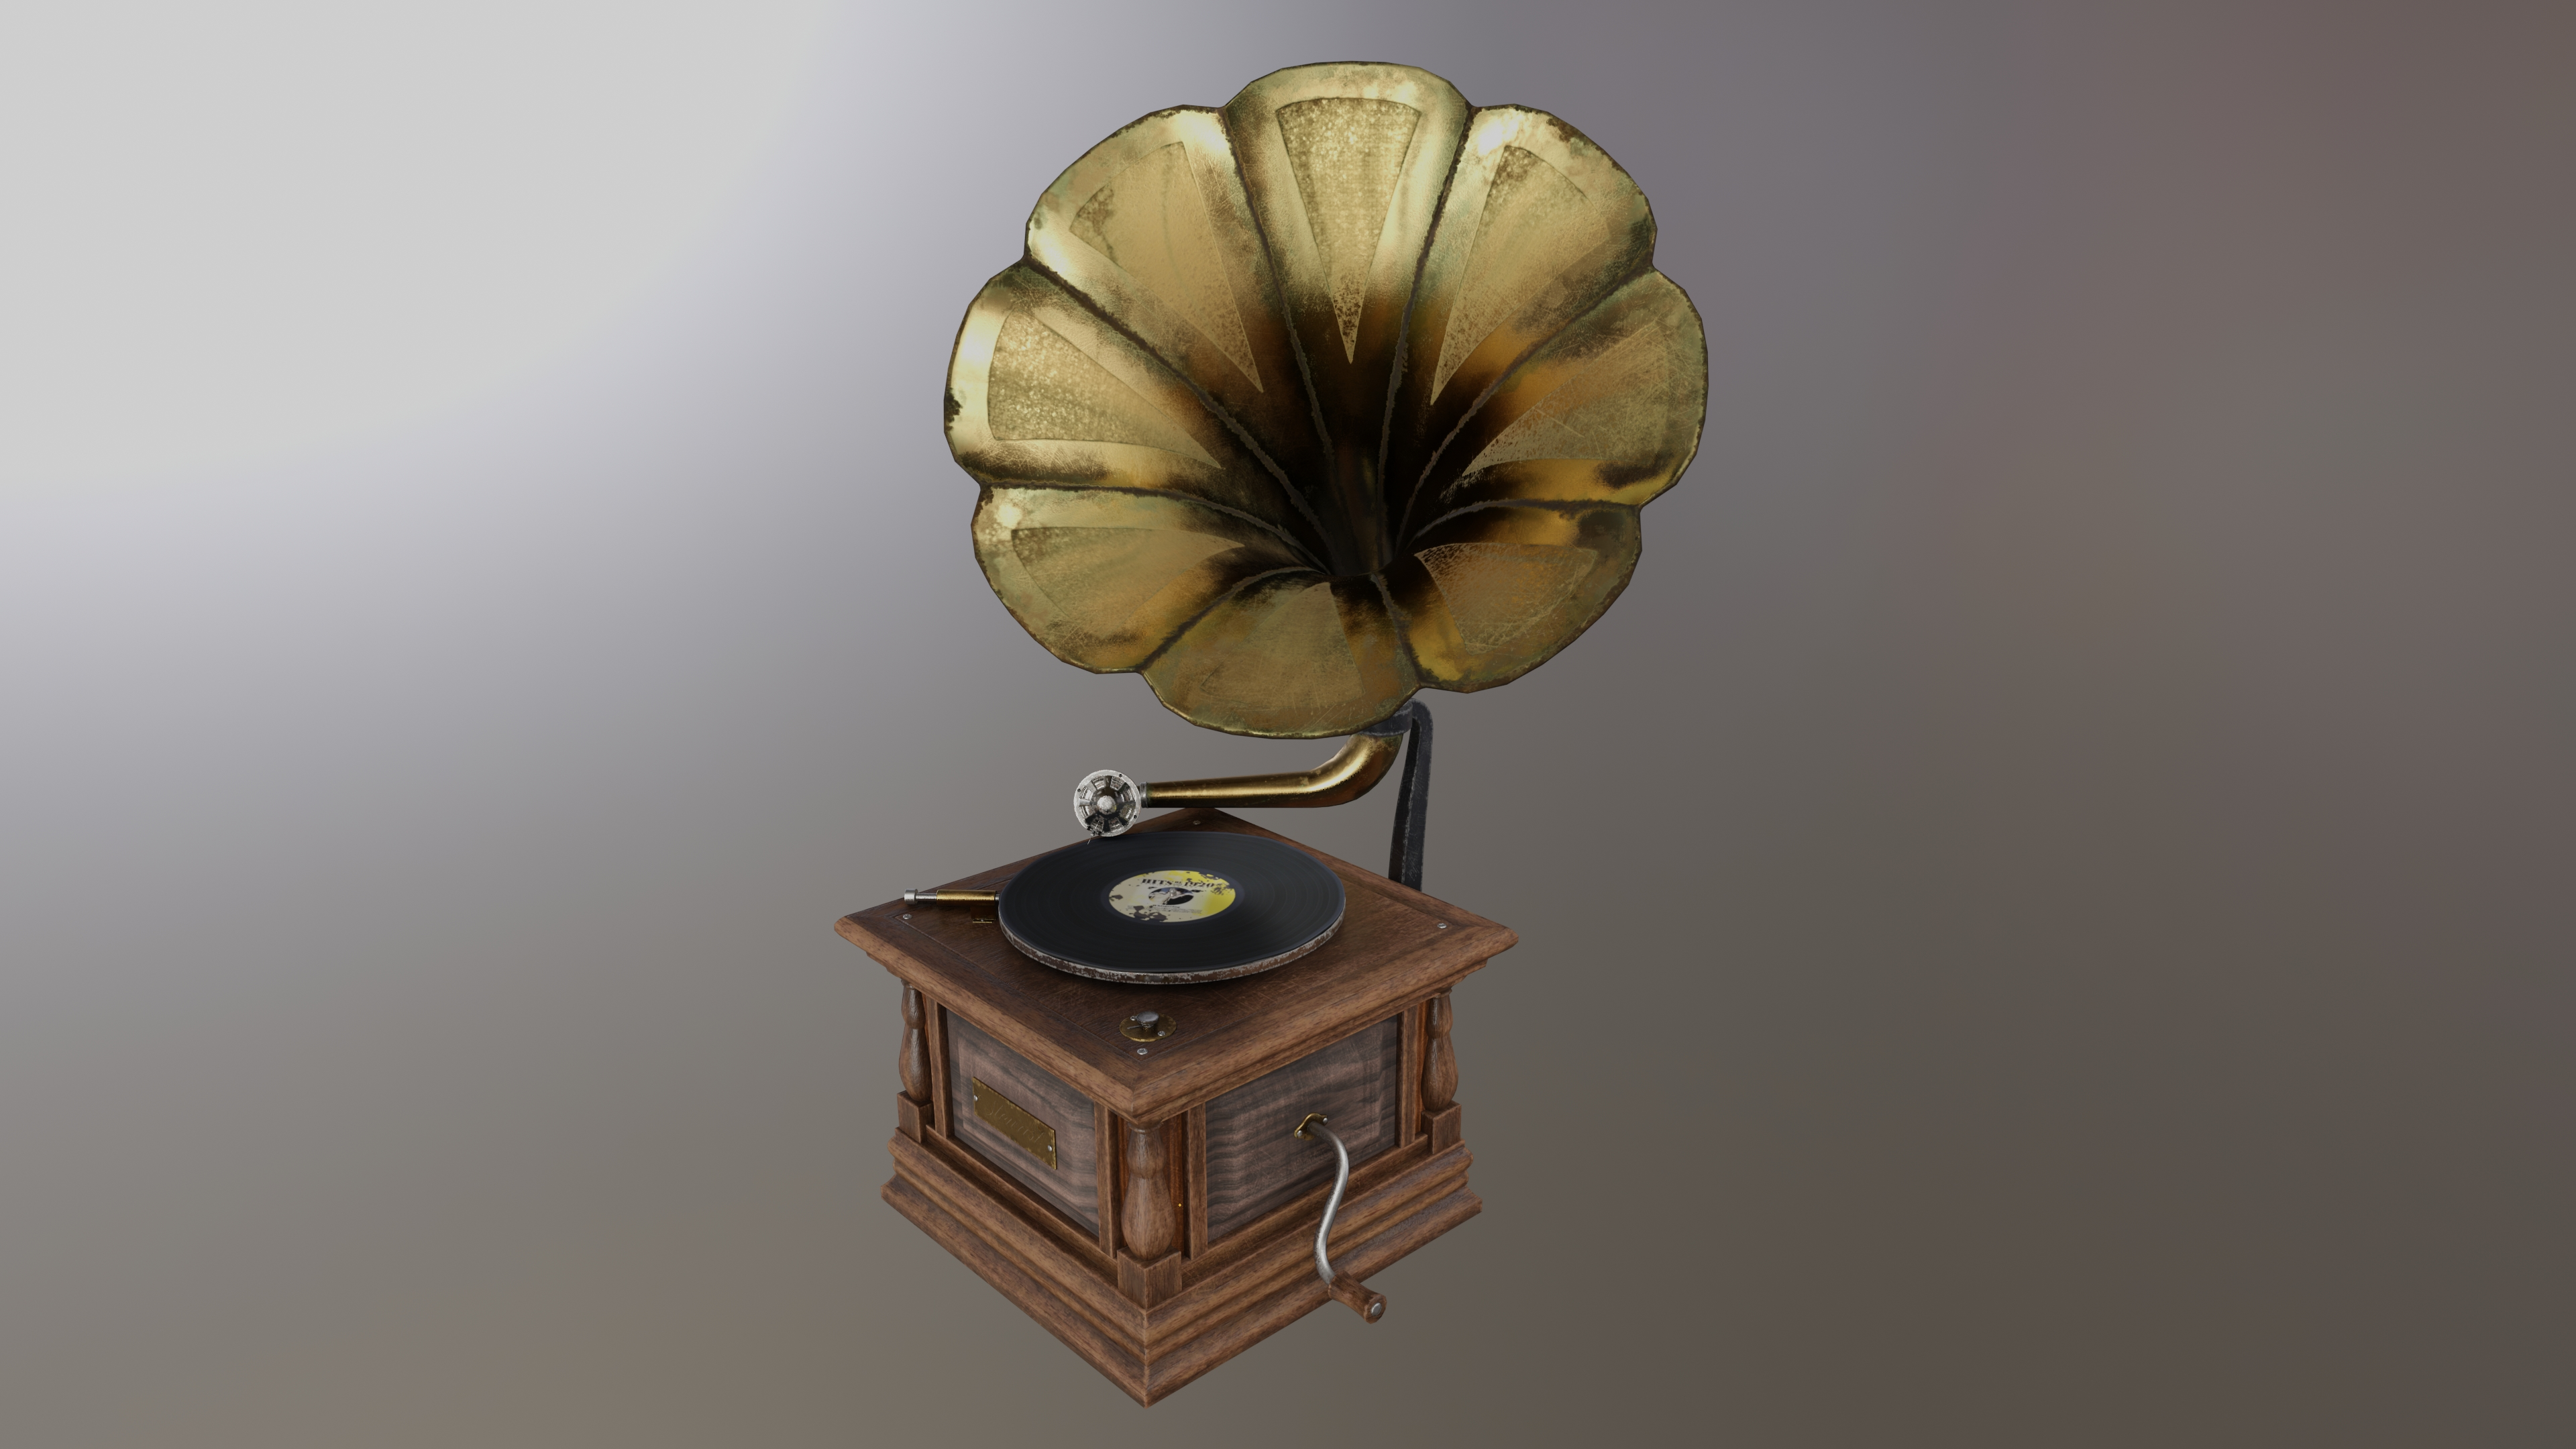 Stewarts Antique Record Player preview image 1